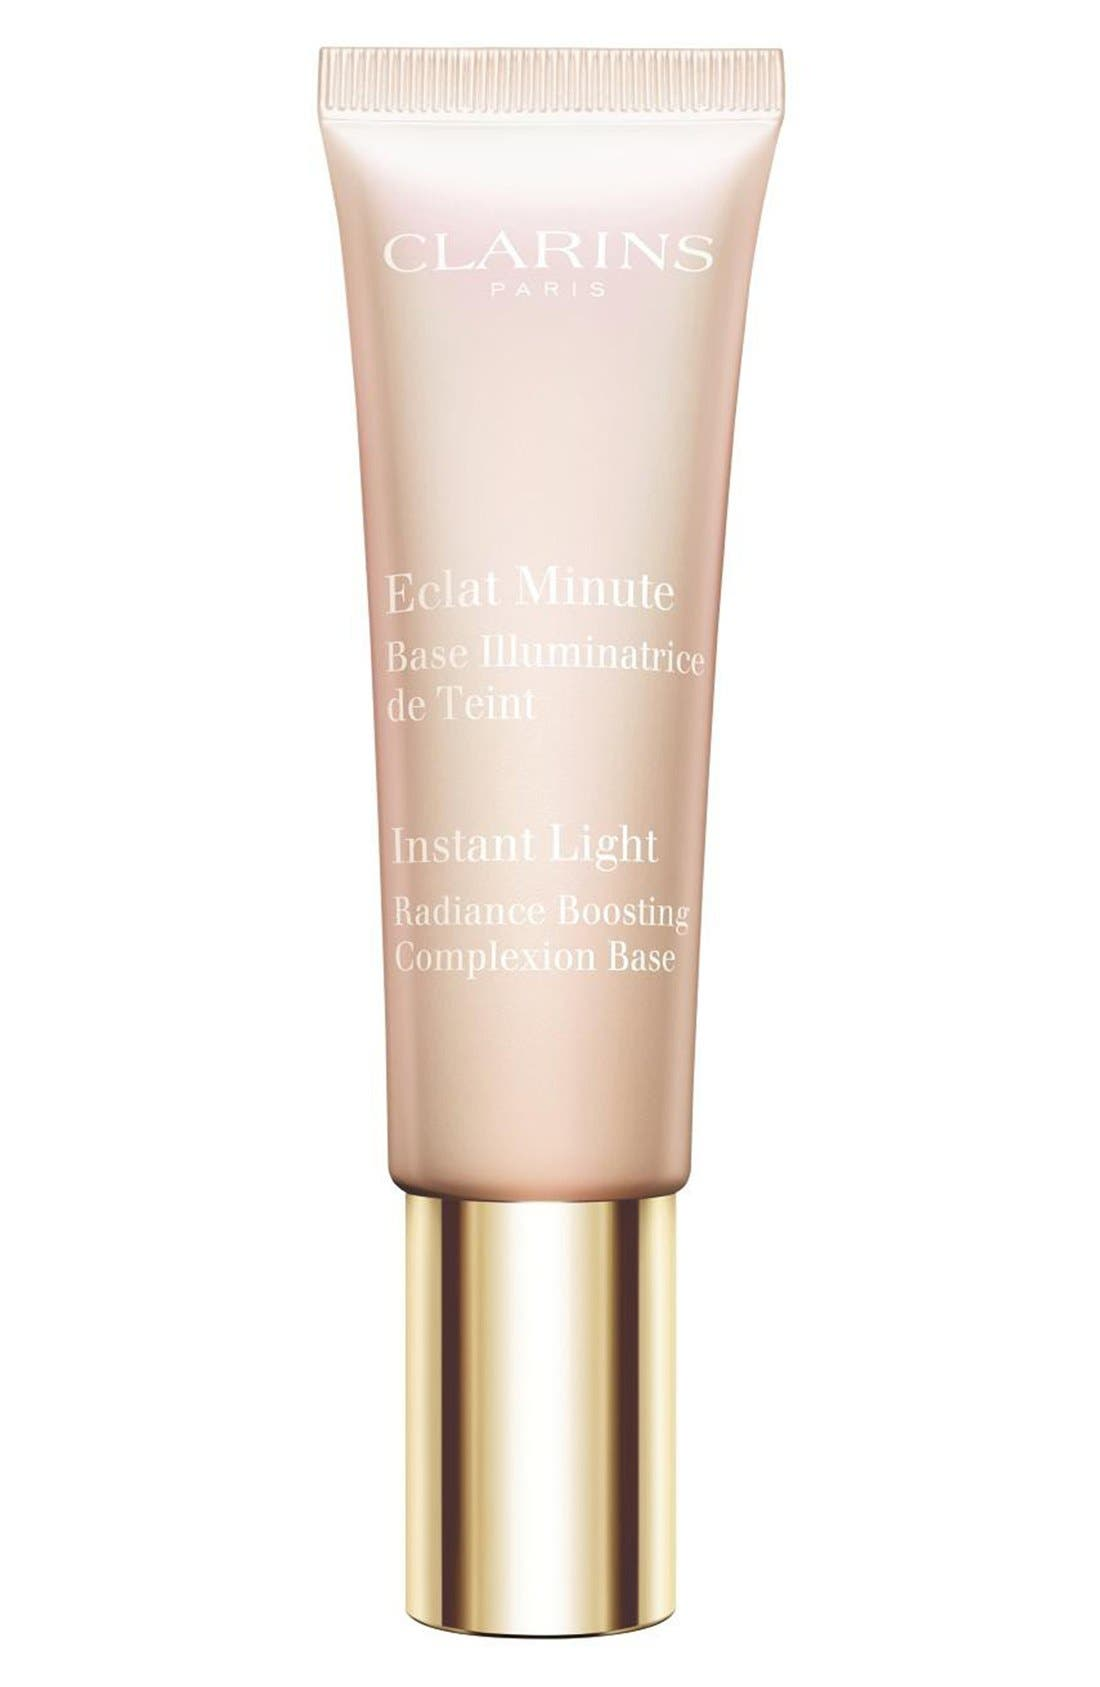 Clarins 'Instant Light' Radiance Boosting Complexion Base